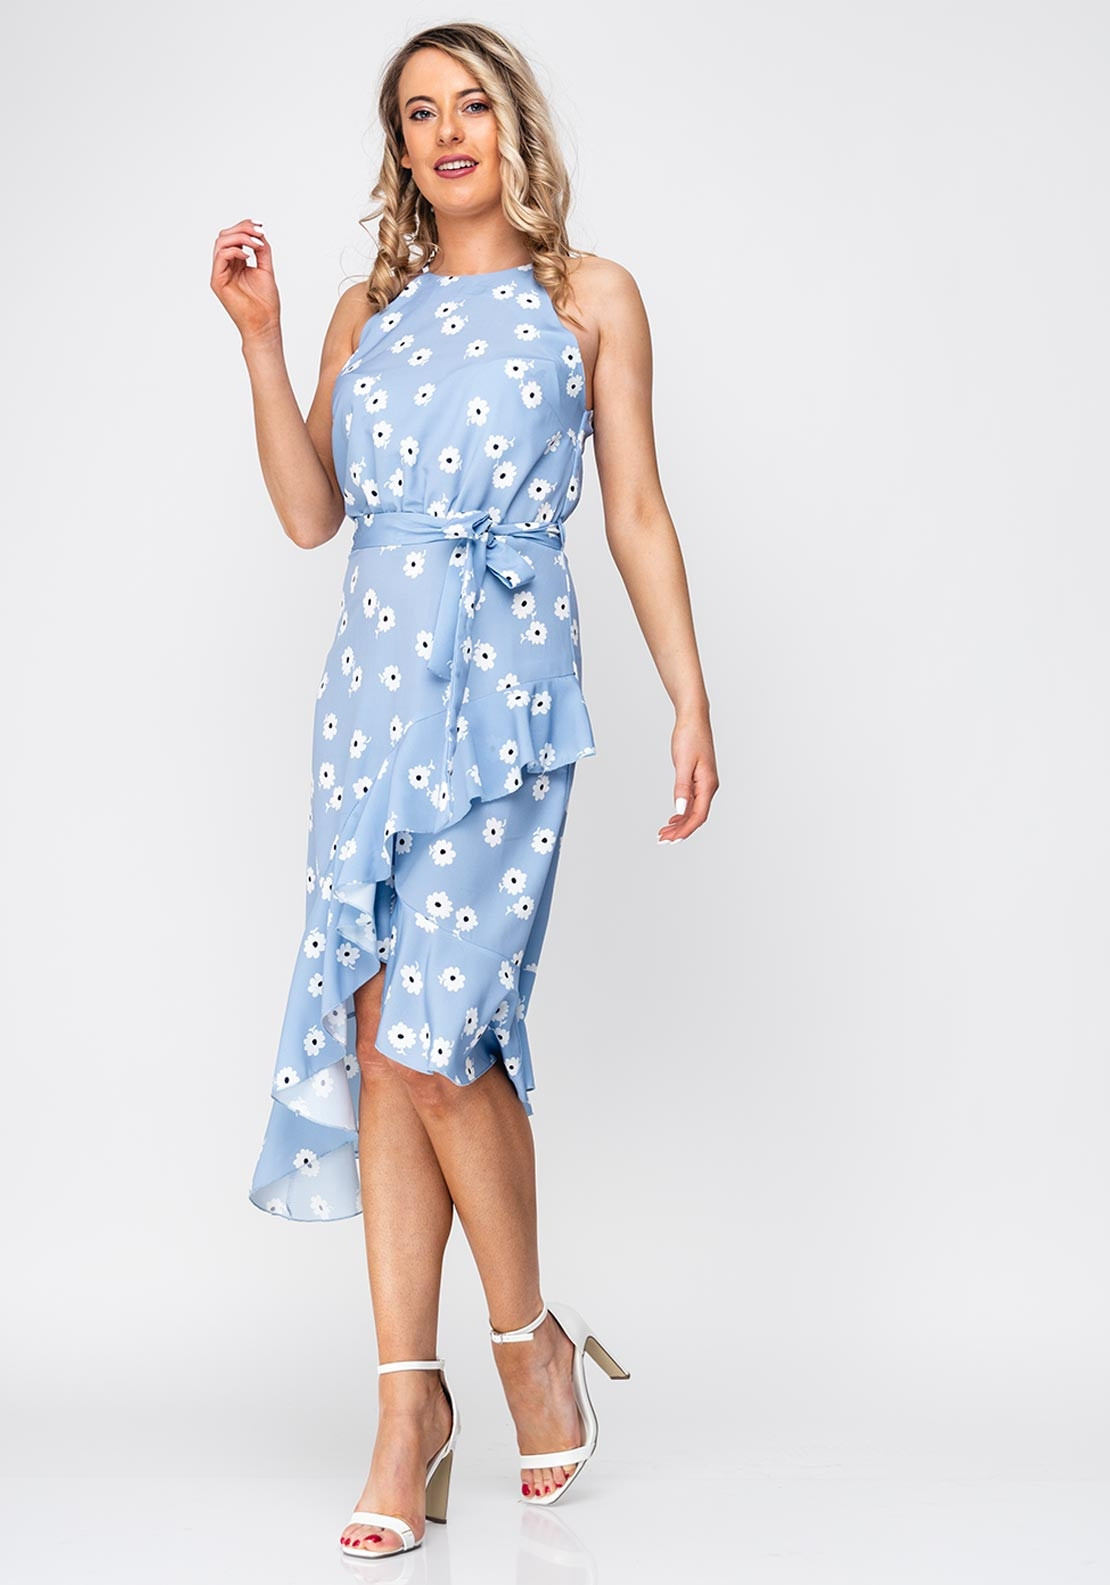 9c6b044f64ea Seventy1 Flower Frill Asymmetric Dress, Blue. Be the first to review this  product